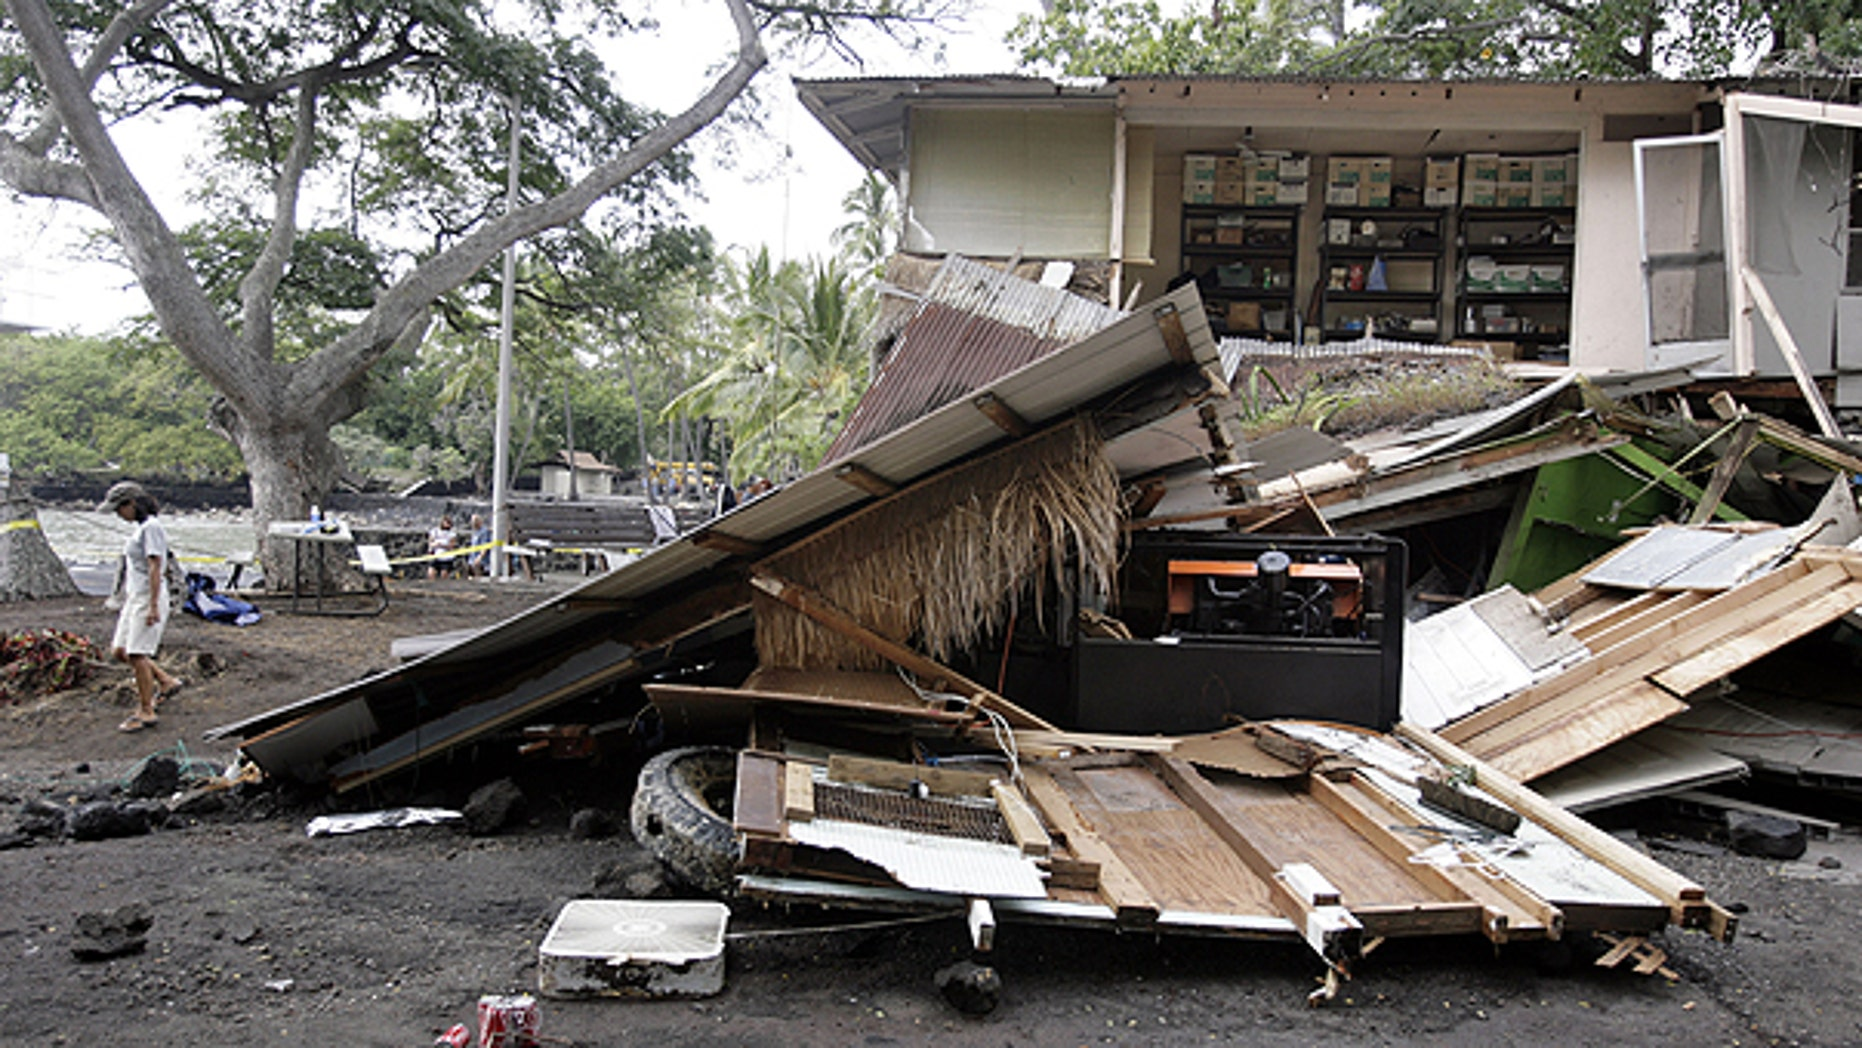 March 11: The partially collapsed Sea Quest Rafting Adventures building following a tsunami wave that struck Keauhou Bay, on the island of Hawaii.